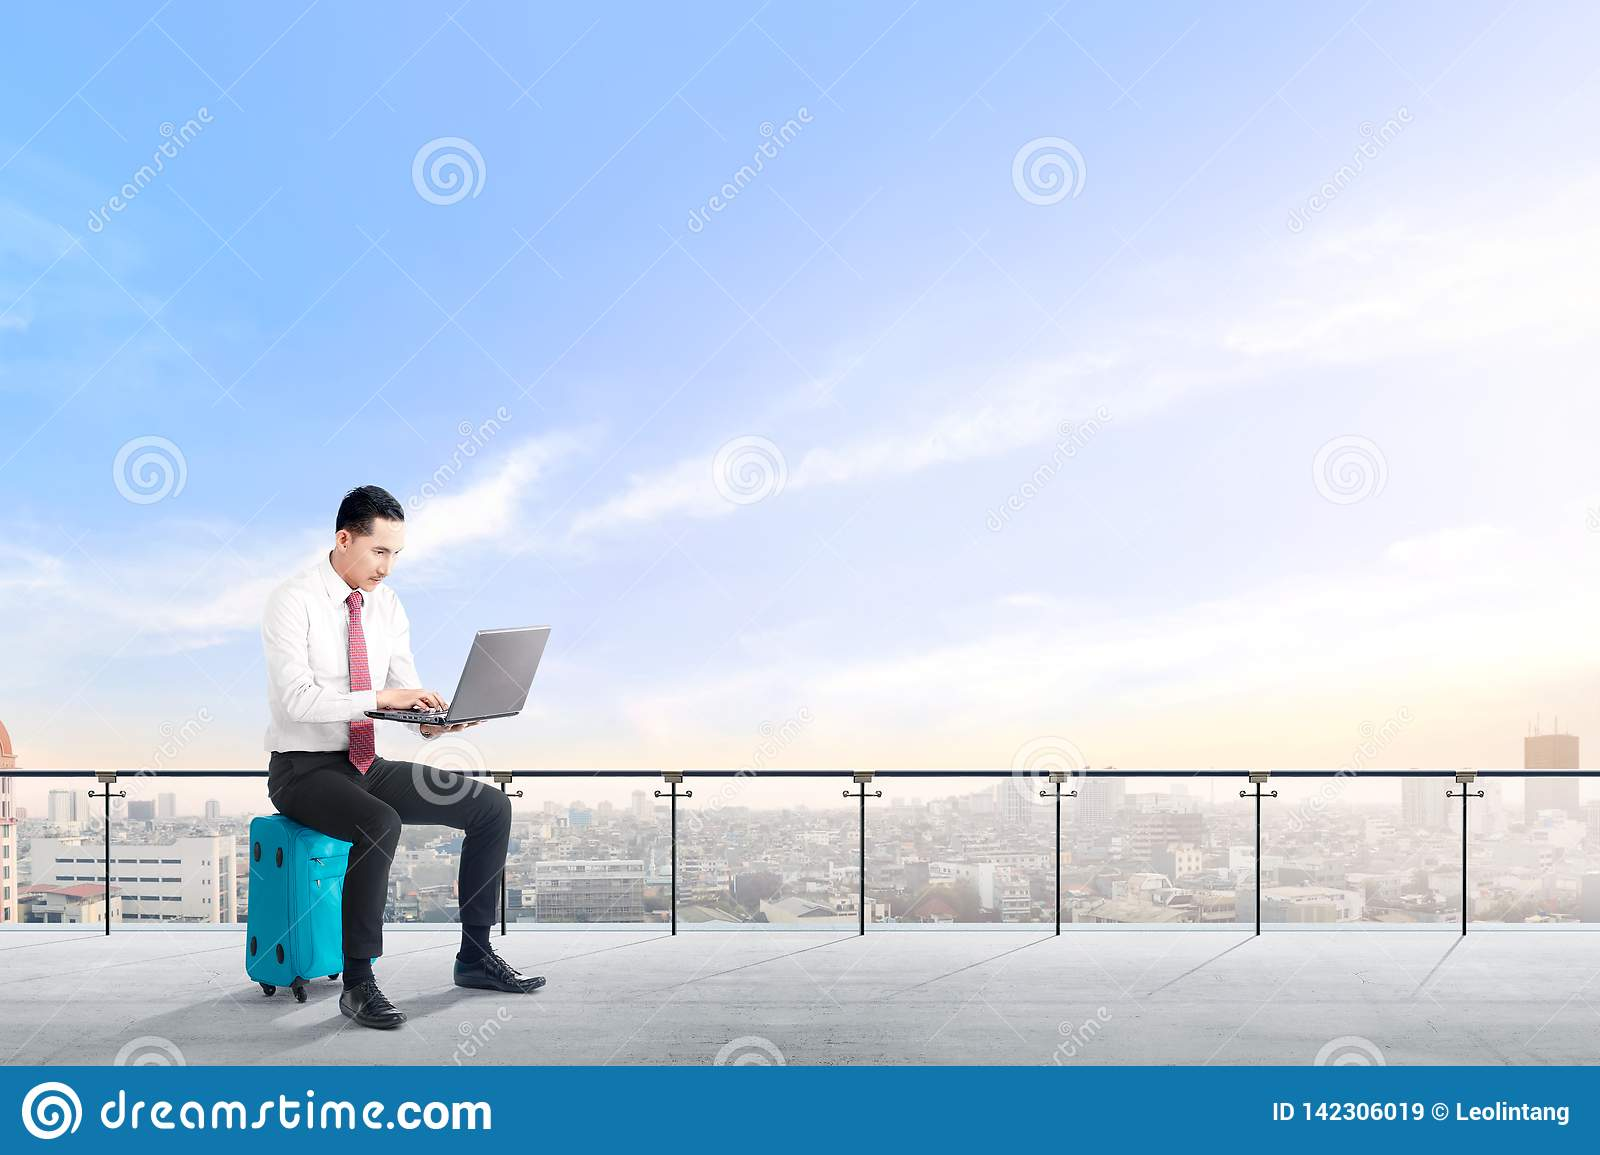 Handsome asian businessman sitting on blue suitcase hold the laptop and working on modern terrace